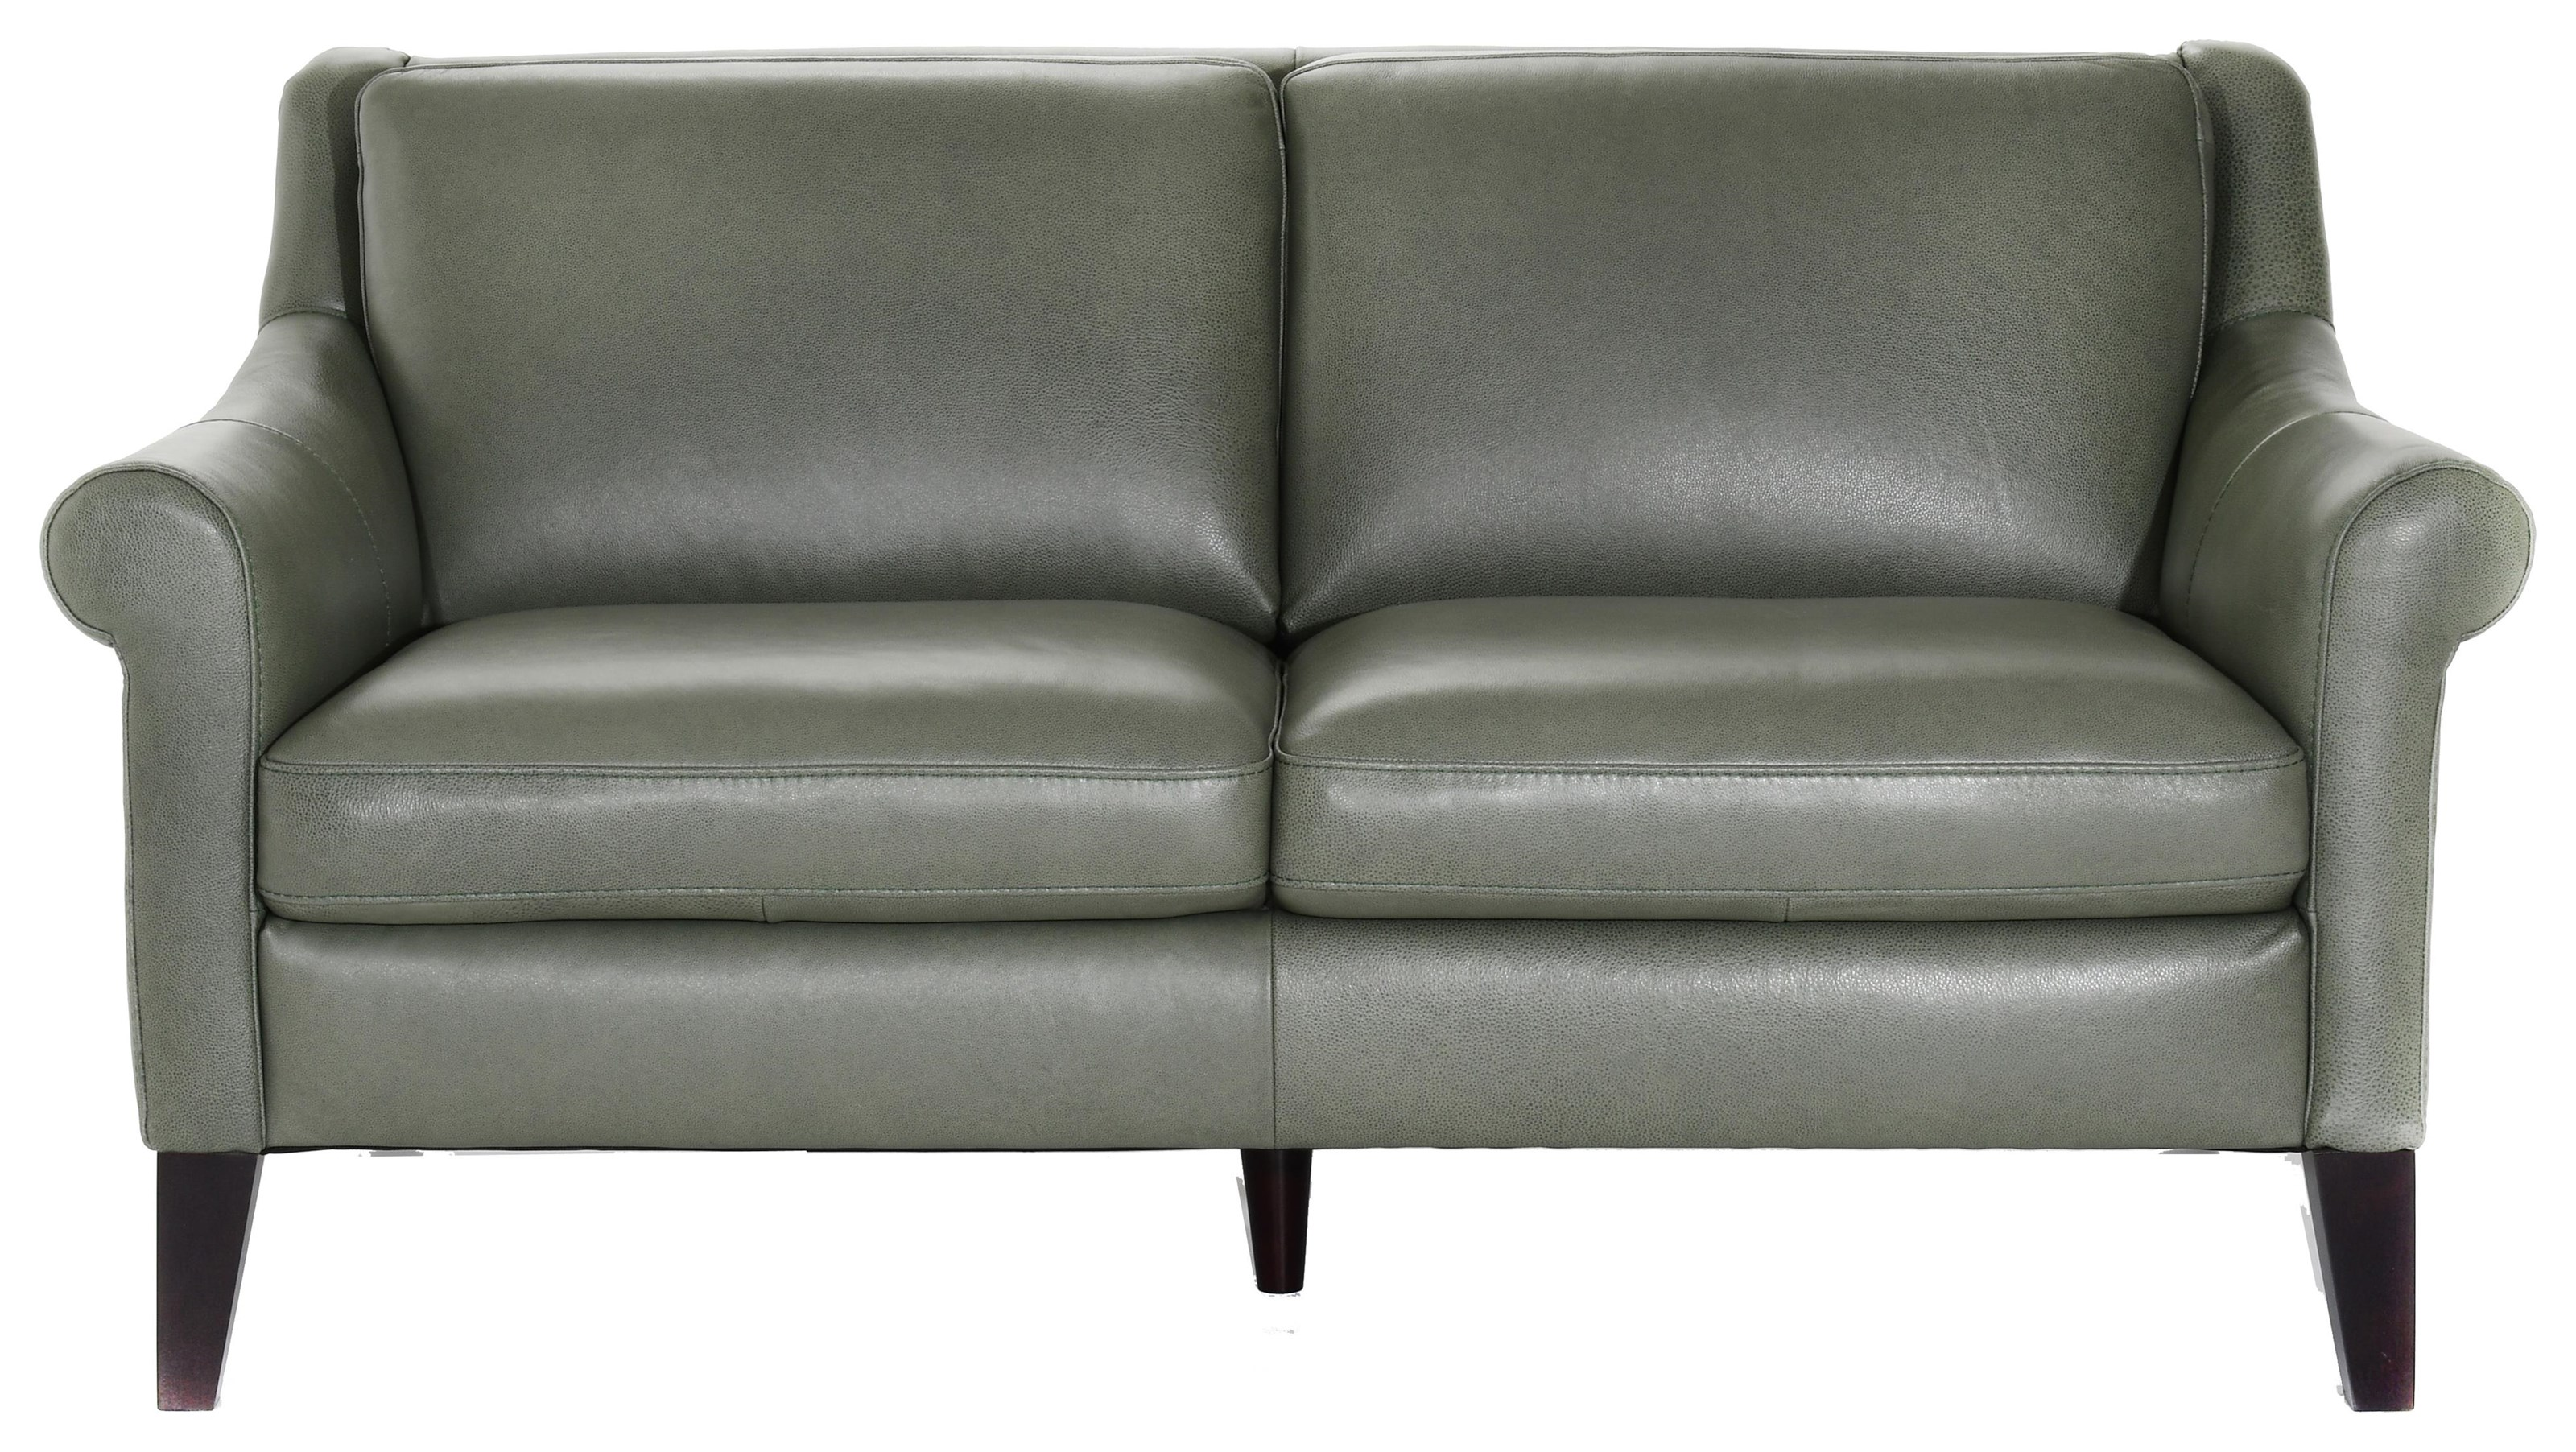 Contemporary Love Seat with Tapered Legs